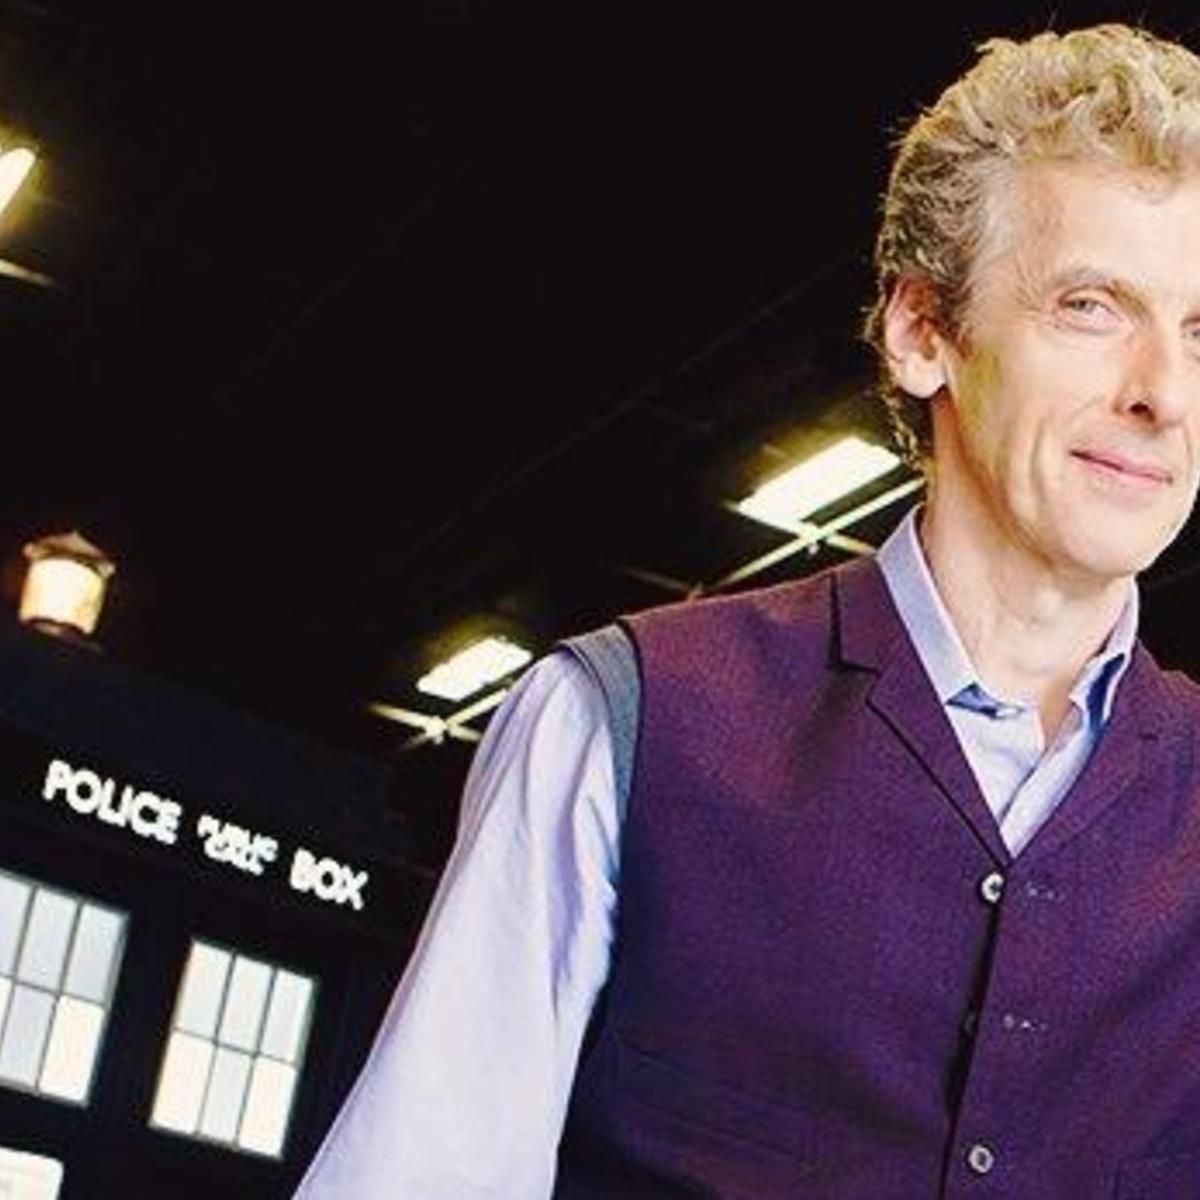 Peter-Capaldi-Doctor-Who-Radio-Times.png